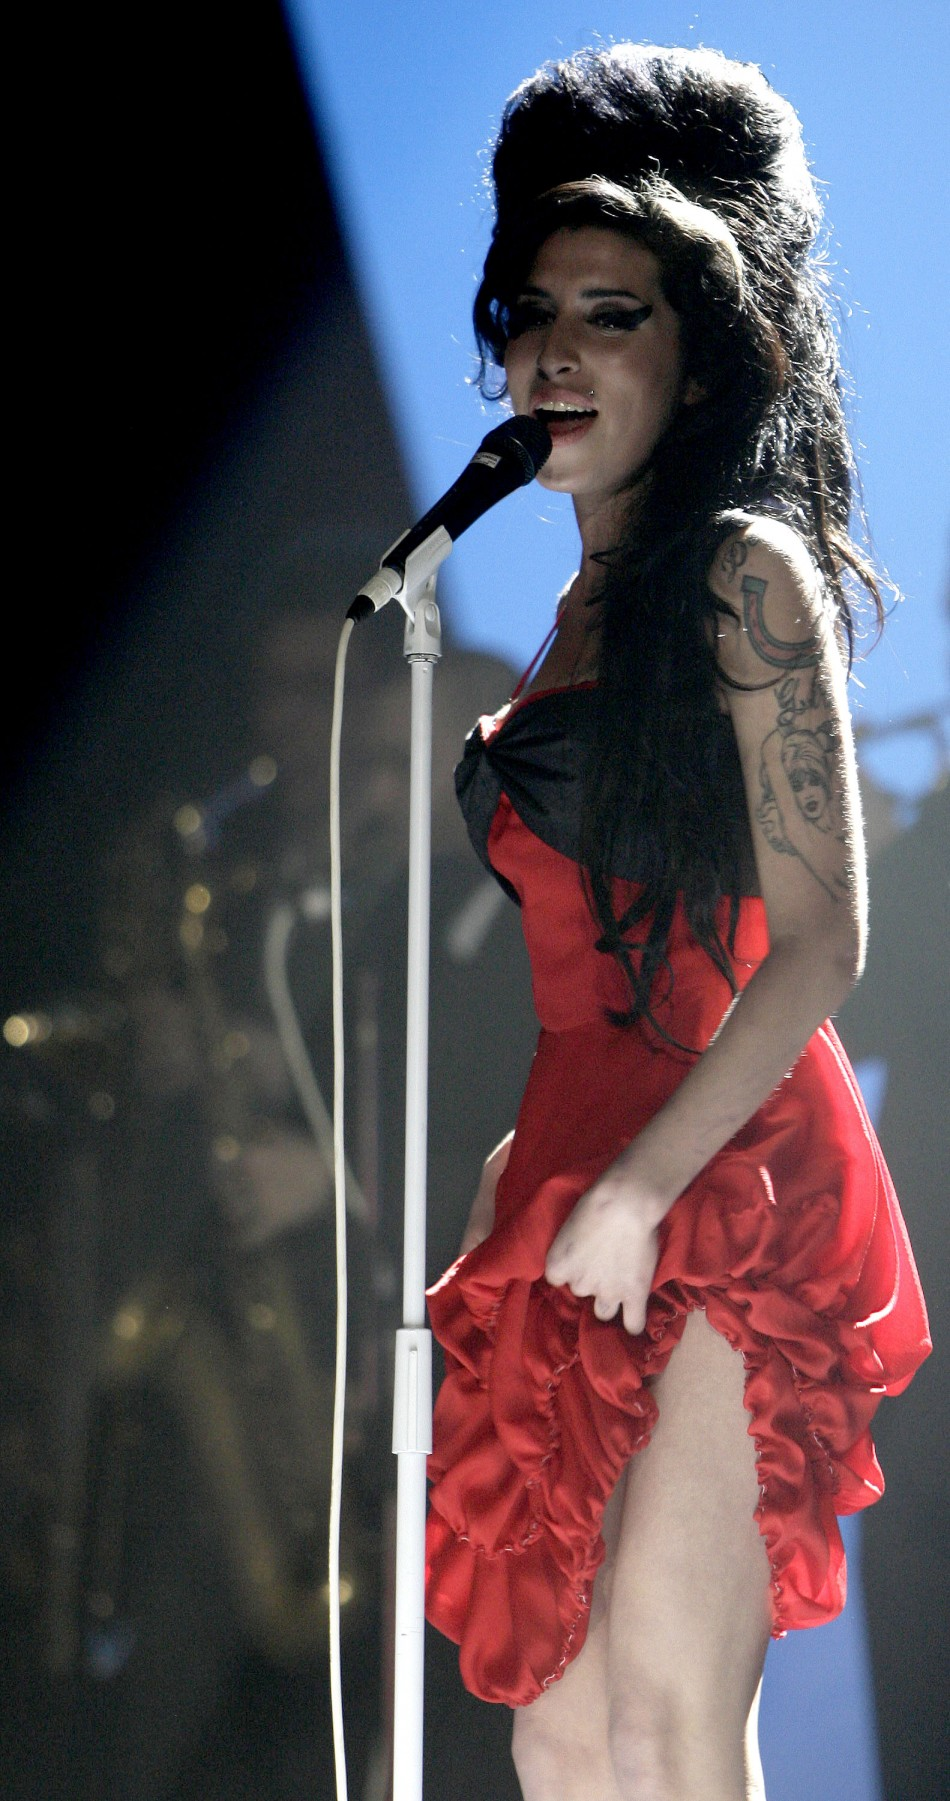 No Illegal Drugs Found in Amy Winehouse's Toxicology Report Amy Winehouse